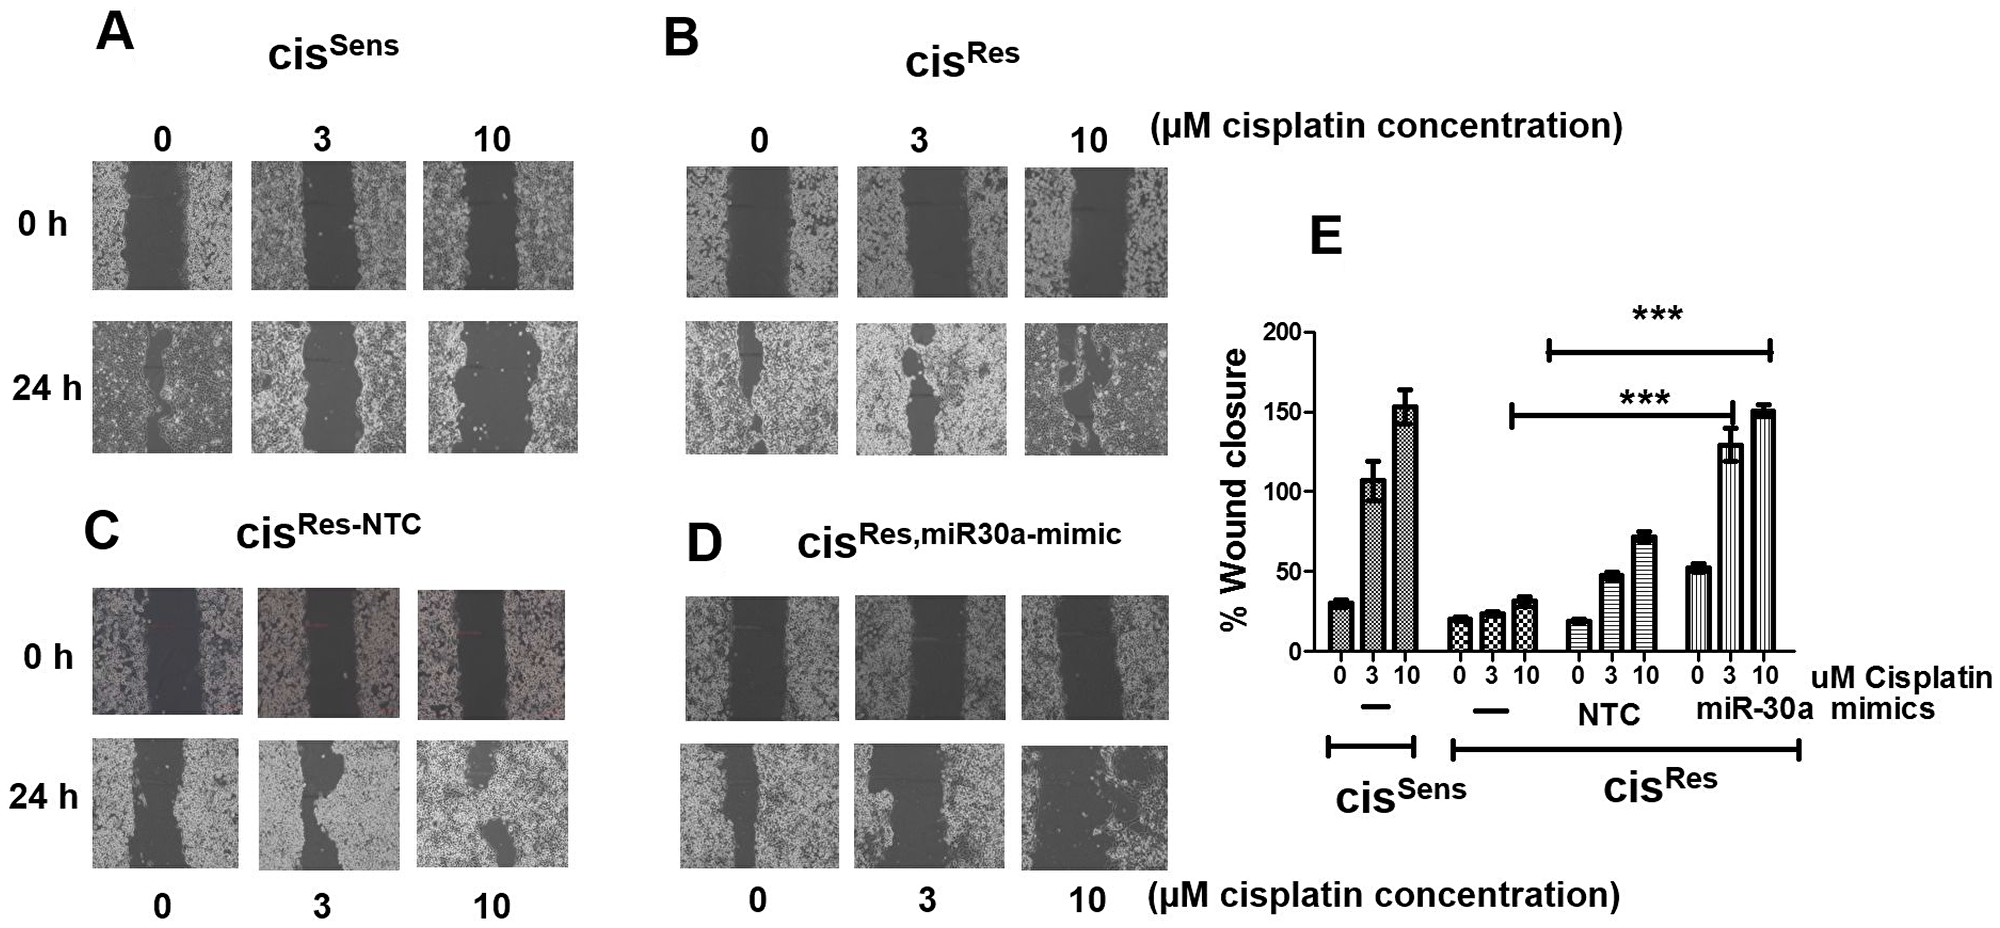 The effects of cisplatin treatment were analyzed on the migration of cisRes oral cancer cells transfected with either miR-30a mimics or NC (non-target control) by wound assay.